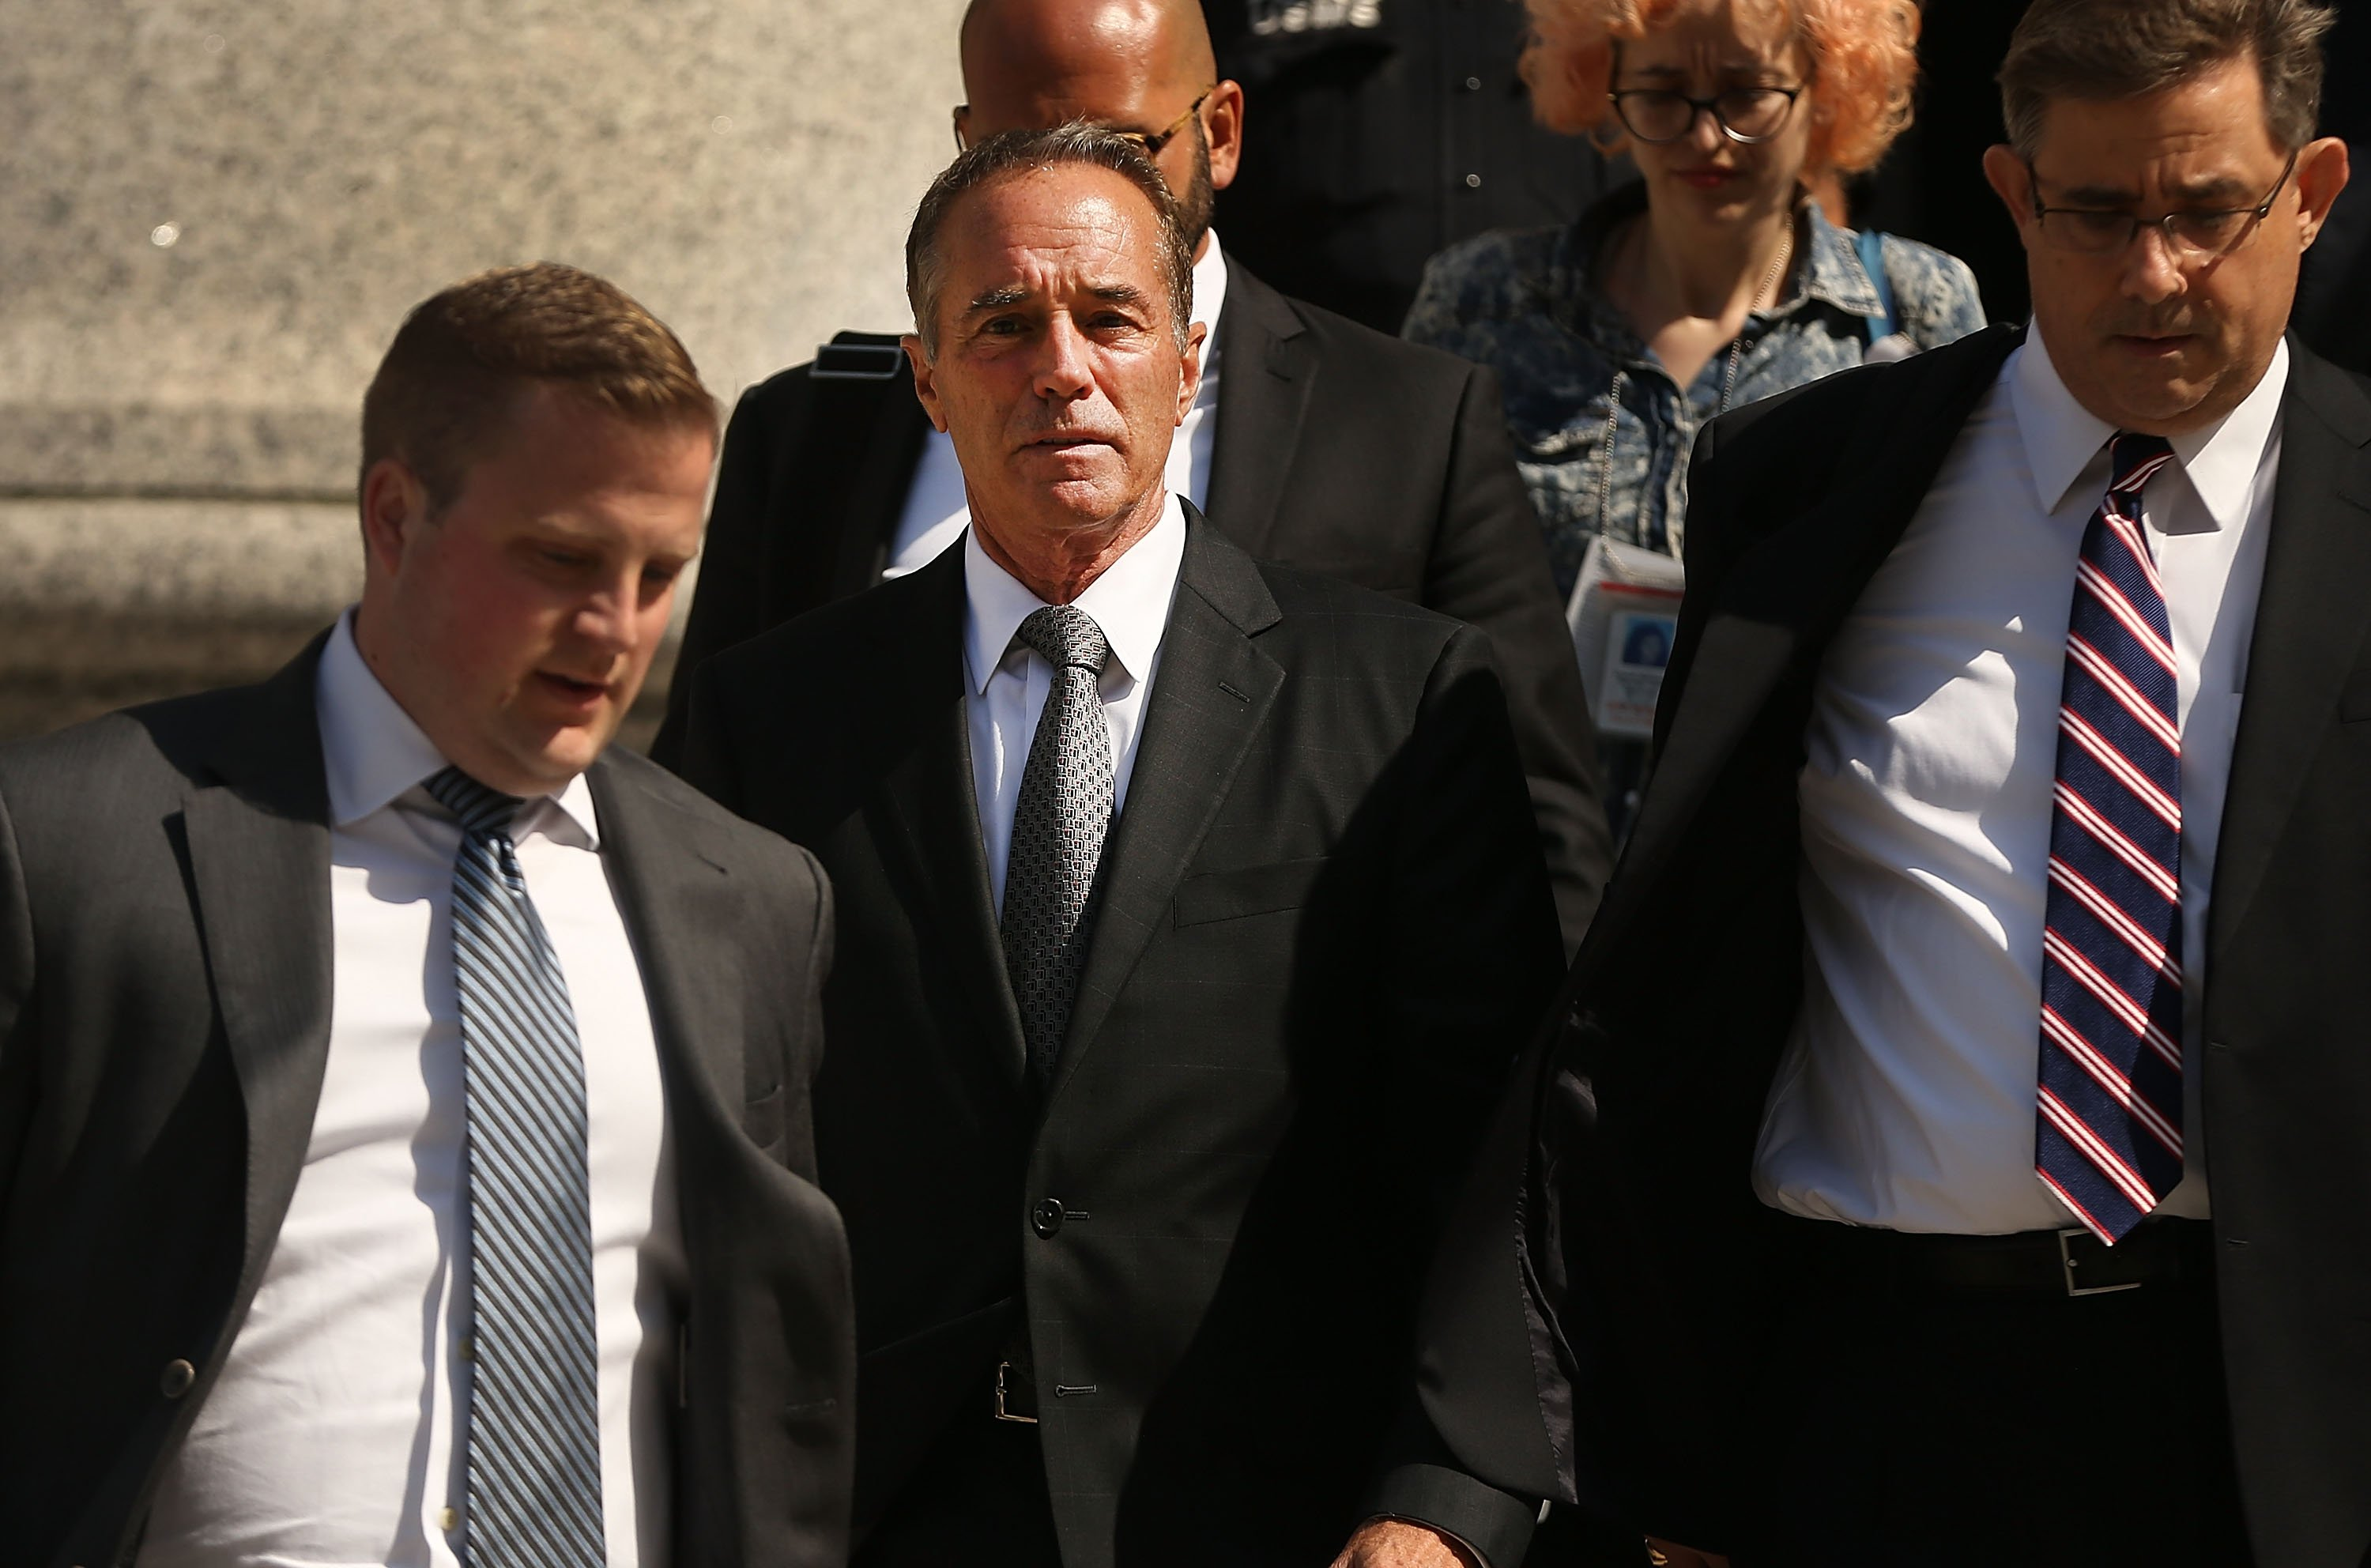 Rep. Chris Collins (2nd L) walks out of a New York court house after being charged with insider trading on August 8, 2018 in New York City. (Photo by Spencer Platt/Getty Images)